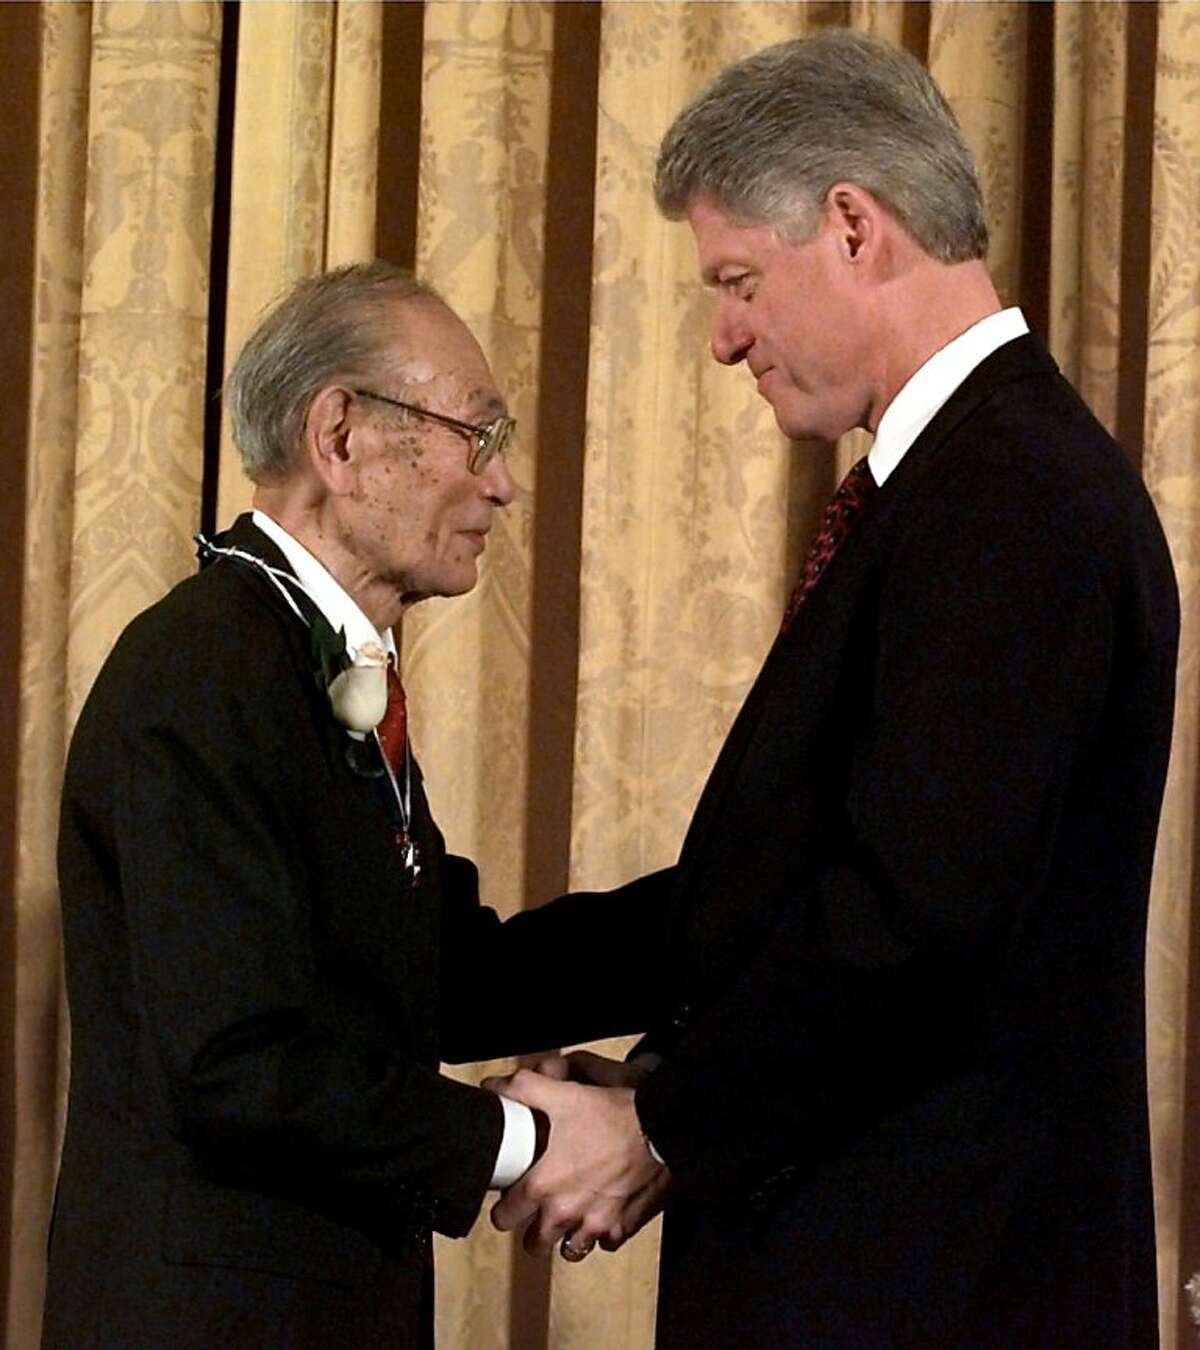 ** FILE ** President Clinton, right, presents Fred Korematsu with a Presidential Medal of Freedom during a ceremony at the White House in Washington in this Jan. 15, 1998 file photo. Korematsu, who unsuccessfully fought the order to be sent to a Japenese American internment camp during World War II, died Wednesday, March 30, 2005. He was 86. Korematsu died of respiratory illness at his daughter's home in Larkspur, said his attorney Dale Minami. (AP Photo/Dennis Cook, file) Ran on: 04-01-2005 Fred Korematsu receives the Presidential Medal of Freedom from President Bill Clinton. Ran on: 04-01-2005 Photo caption Dummy text goes here. Dummy text goes here. Dummy text goes here. Dummy text goes here. Dummy text goes here. Dummy text goes here. Dummy text goes here. Dummy text goes here. Ran on: 04-01-2005 Photo caption Dummy text goes here. Dummy text goes here. Dummy text goes here. Dummy text goes here. Dummy text goes here. Dummy text goes here. Dummy text goes here. Dummy text goes here. Ran on: 04-01-2005 Photo caption Dummy text goes here. Dummy text goes here. Dummy text goes here. Dummy text goes here. Dummy text goes here. Dummy text goes here. Dummy text goes here. Dummy text goes here. Ran on: 01-29-2011 Fred Korematsu (left) receives the Presidential Medal of Freedom from President Bill Clinton.